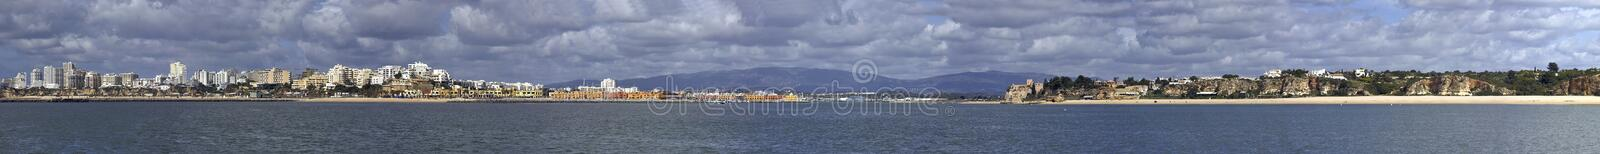 Panoramic view at Portimao city in Portugal royalty free stock photos